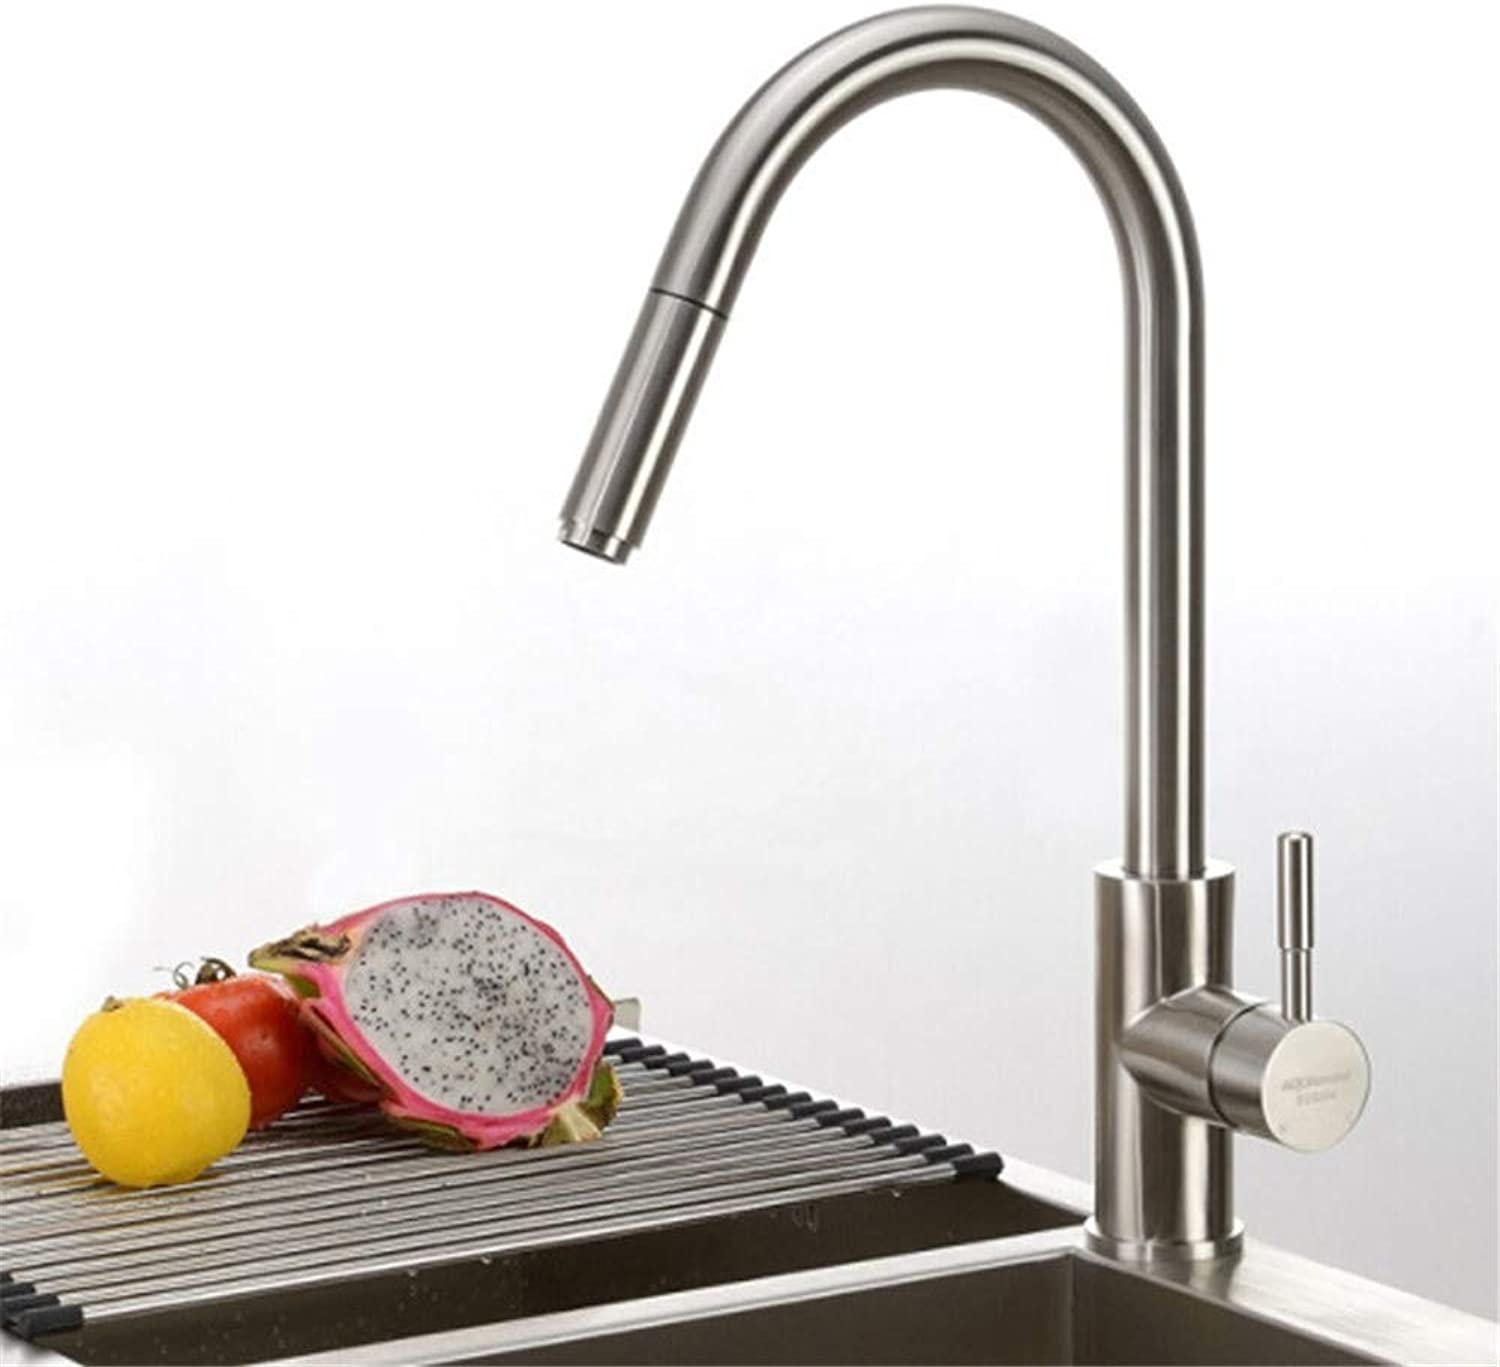 Decorry 304 Stainless Steel Faucet Kitchen Sink Faucet Pull-Out Multi-Purpose Water Caipen LeaderS65-UE6589321592